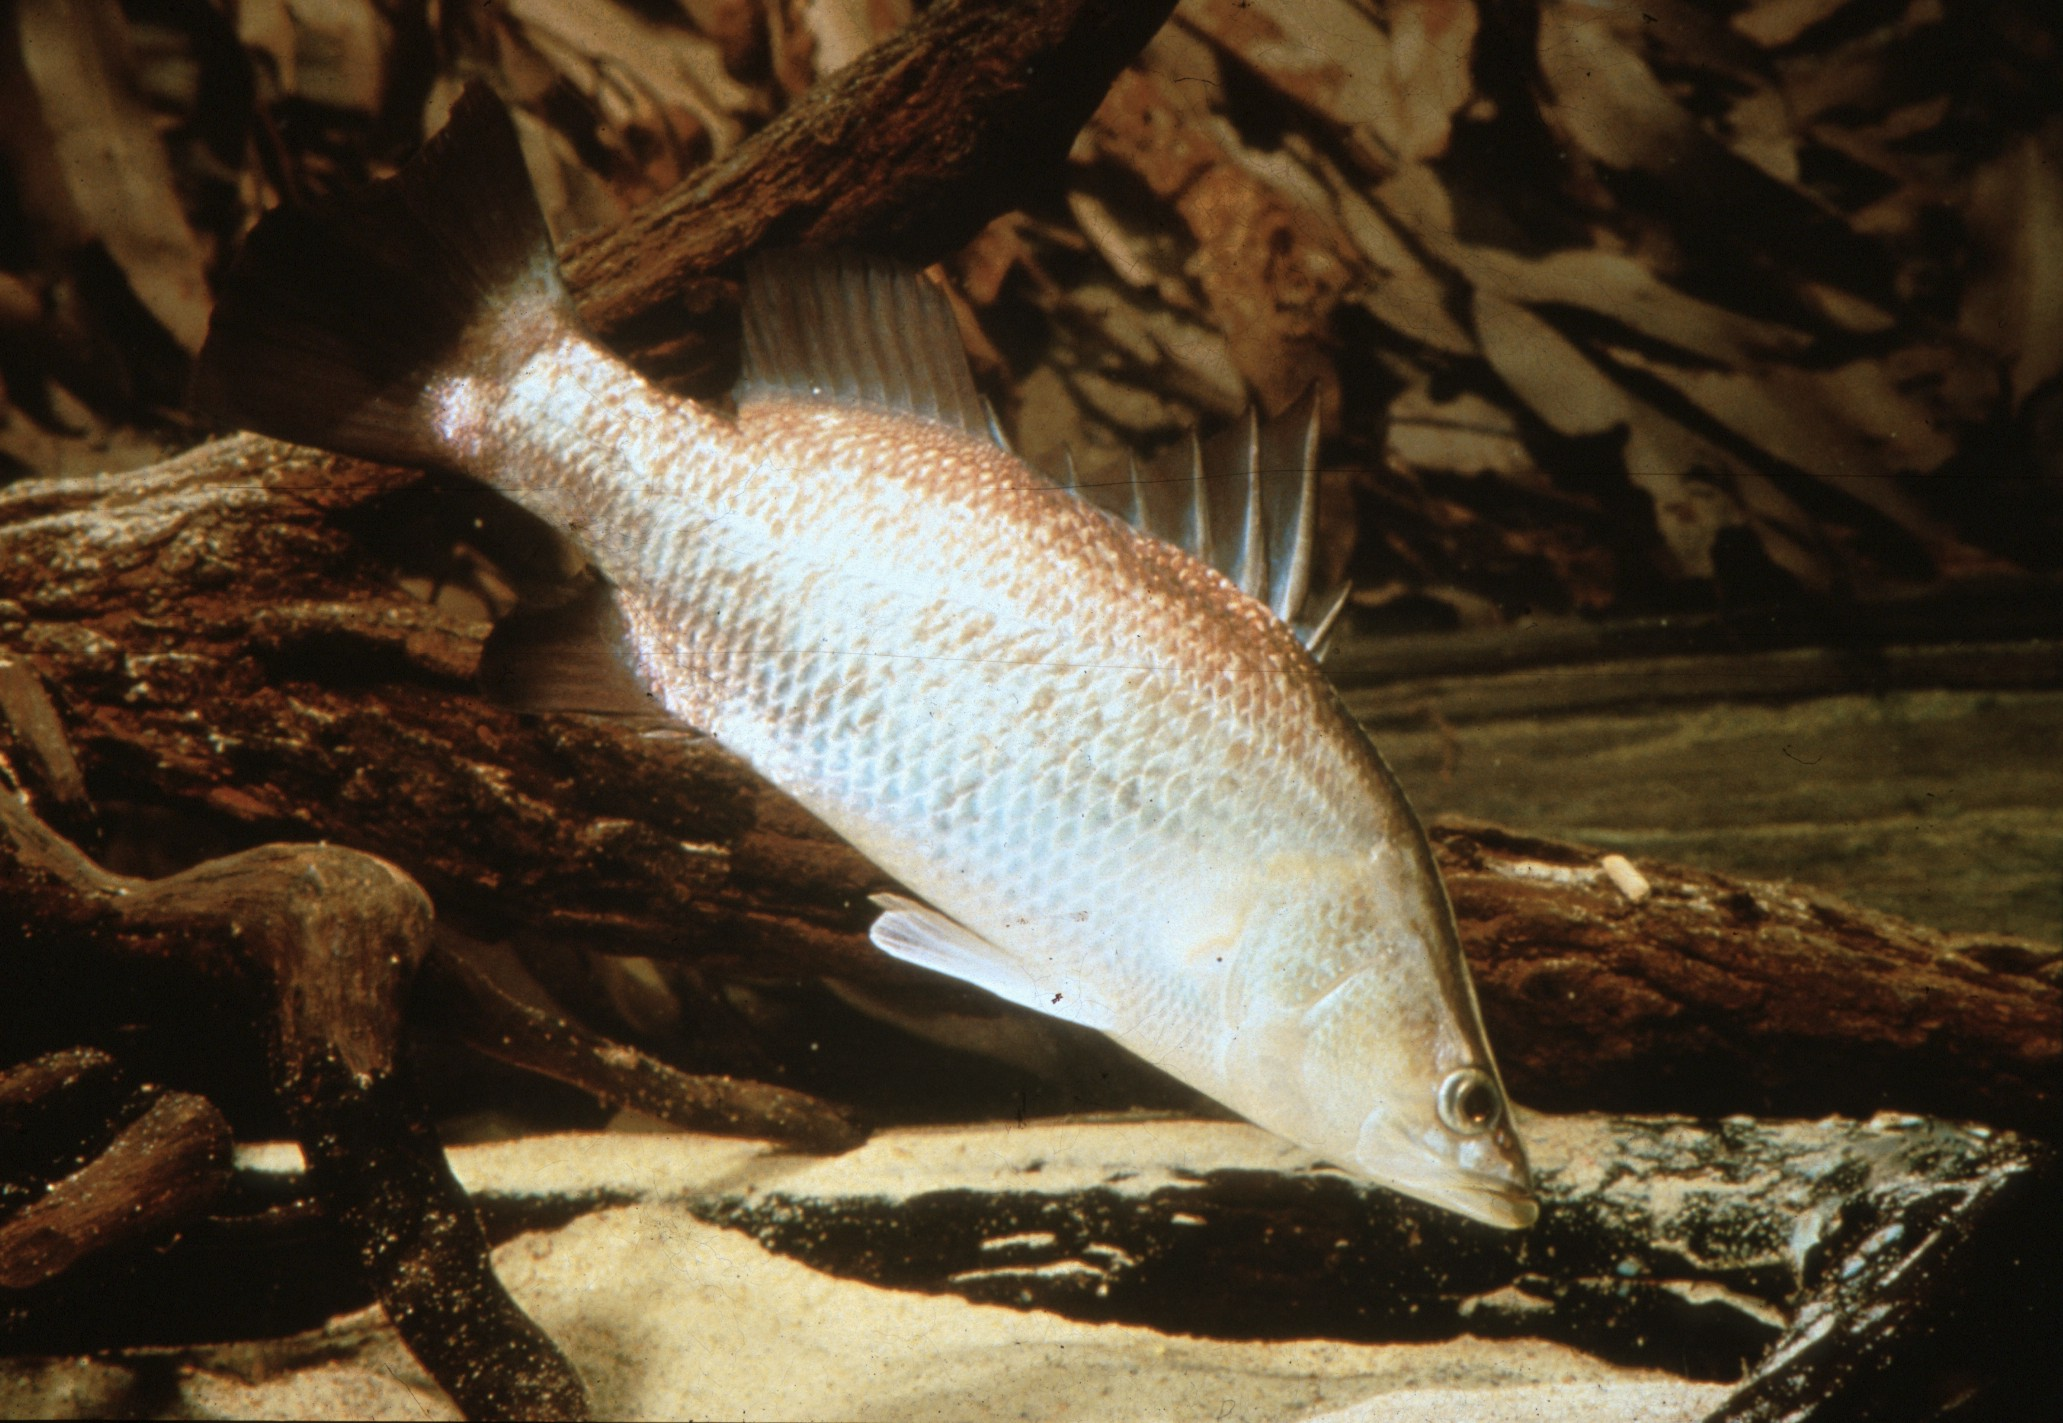 Lates calcarifer (Barramundi)